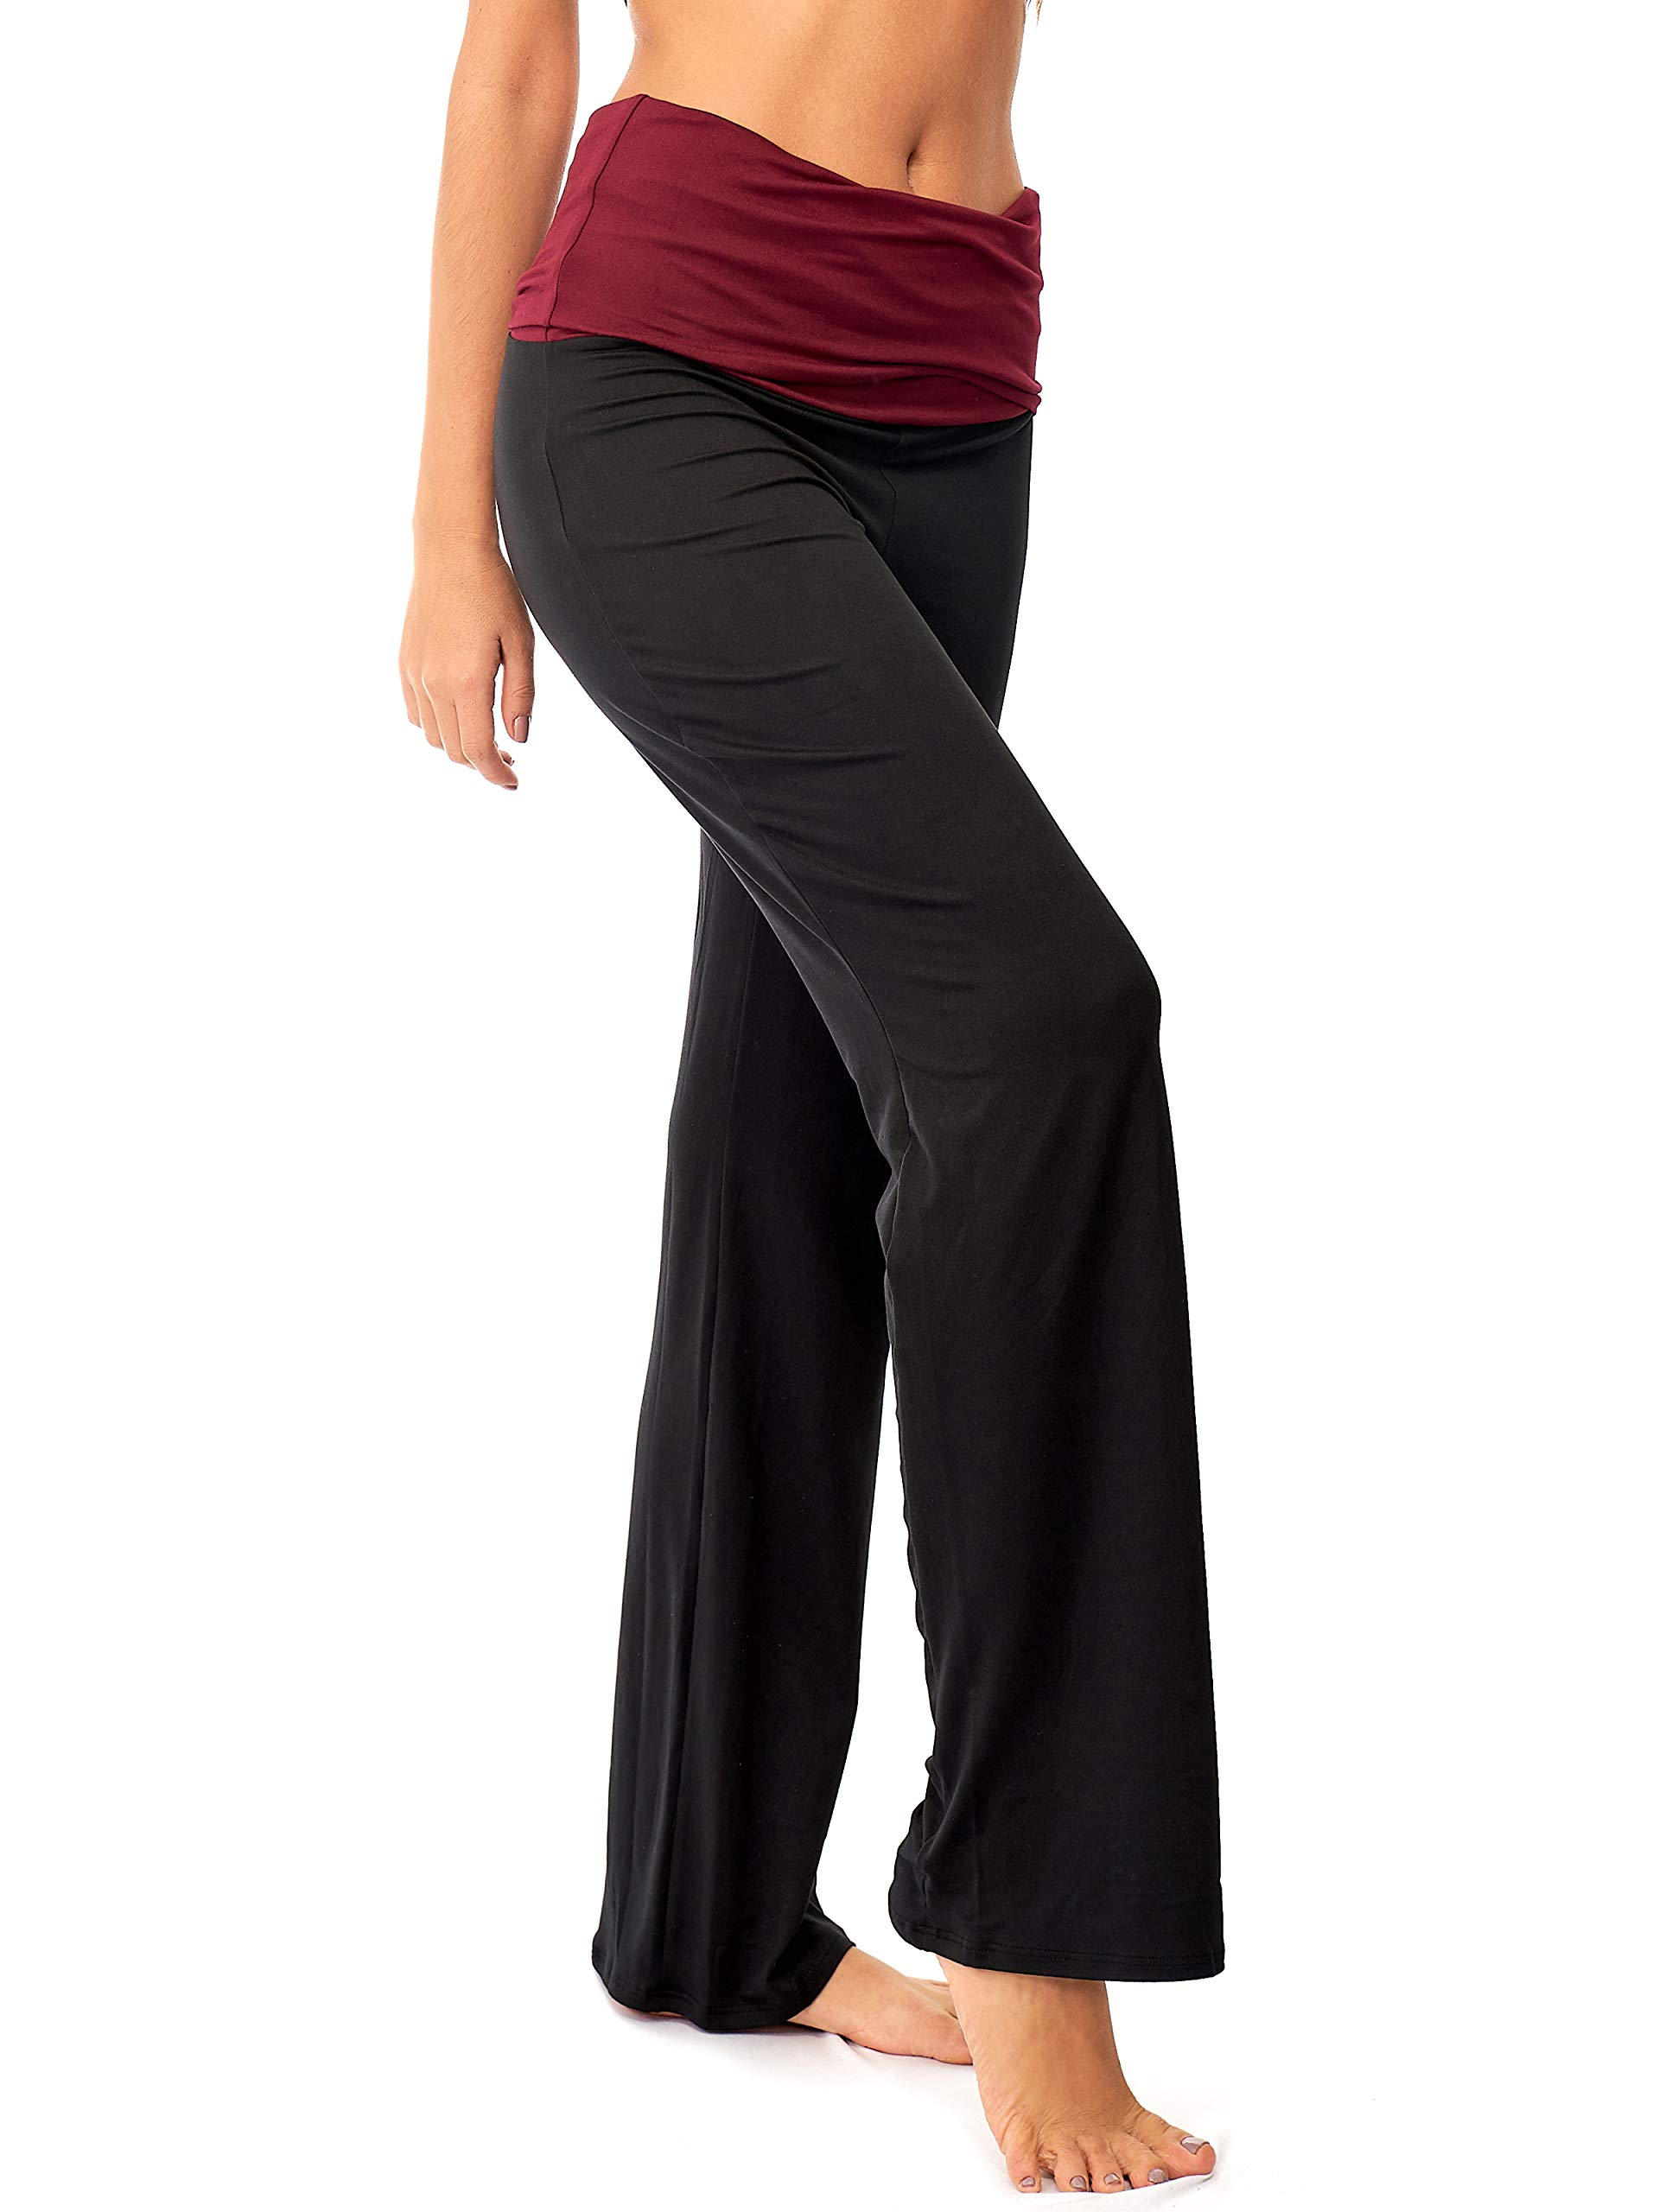 DEAR SPARKLE Fold Over Yoga Lounge Stretch Pants Women | Contrasting High Waist Loose Pregnancy Pant Plus (P8)